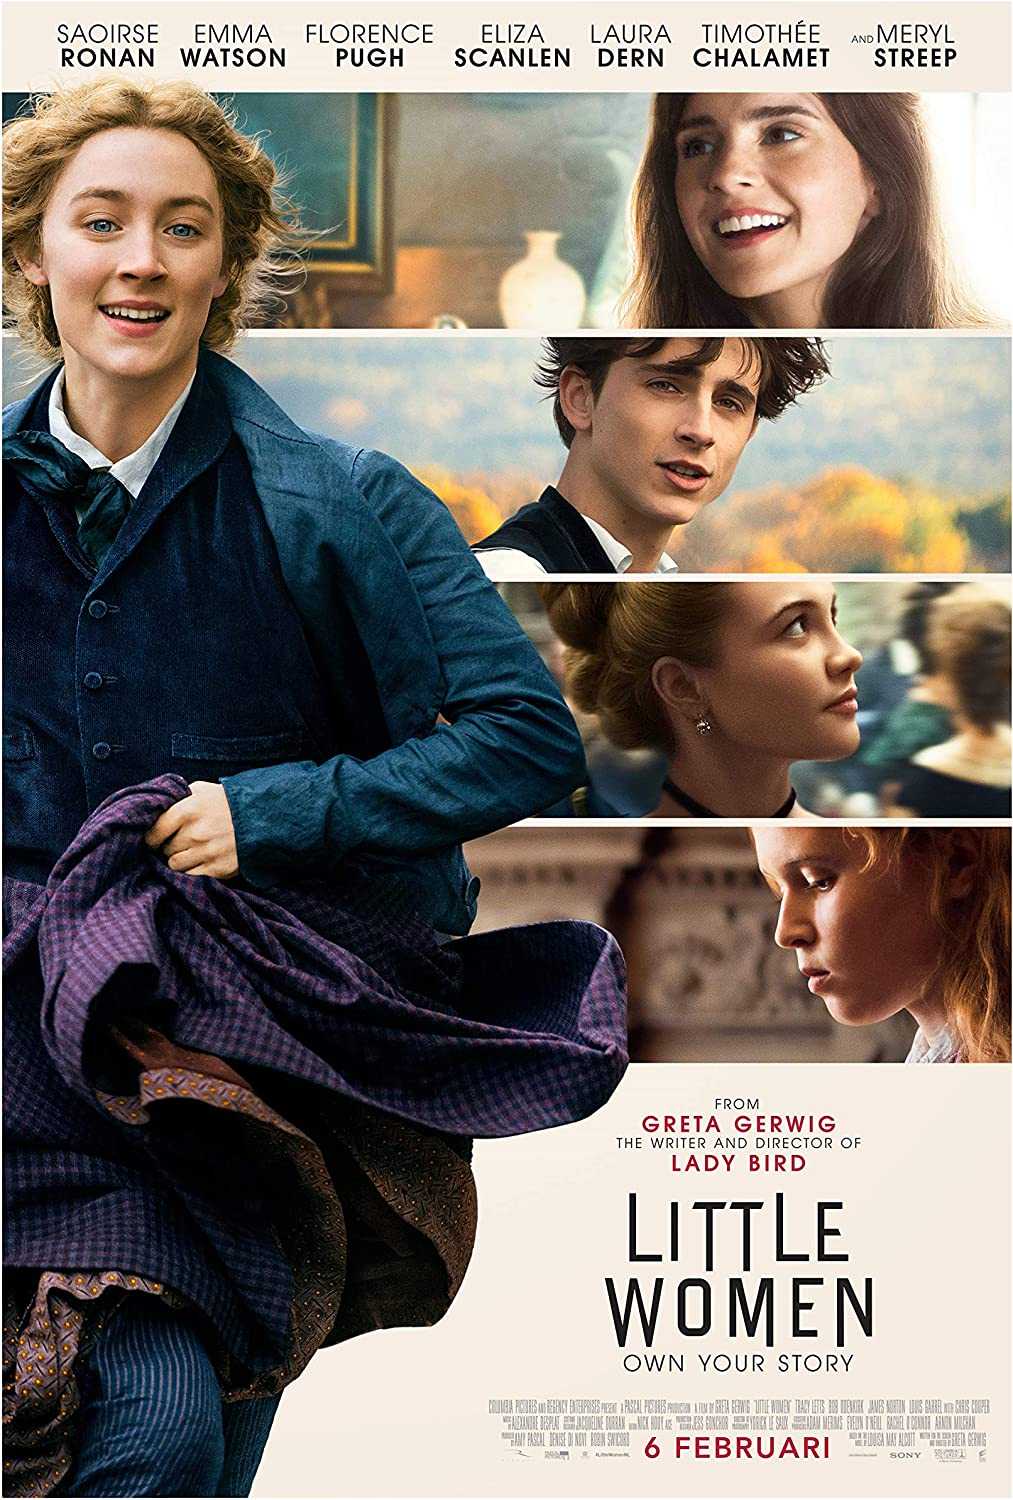 Amazon.com : Little Women Movie Poster Hight Quality Glossy ...